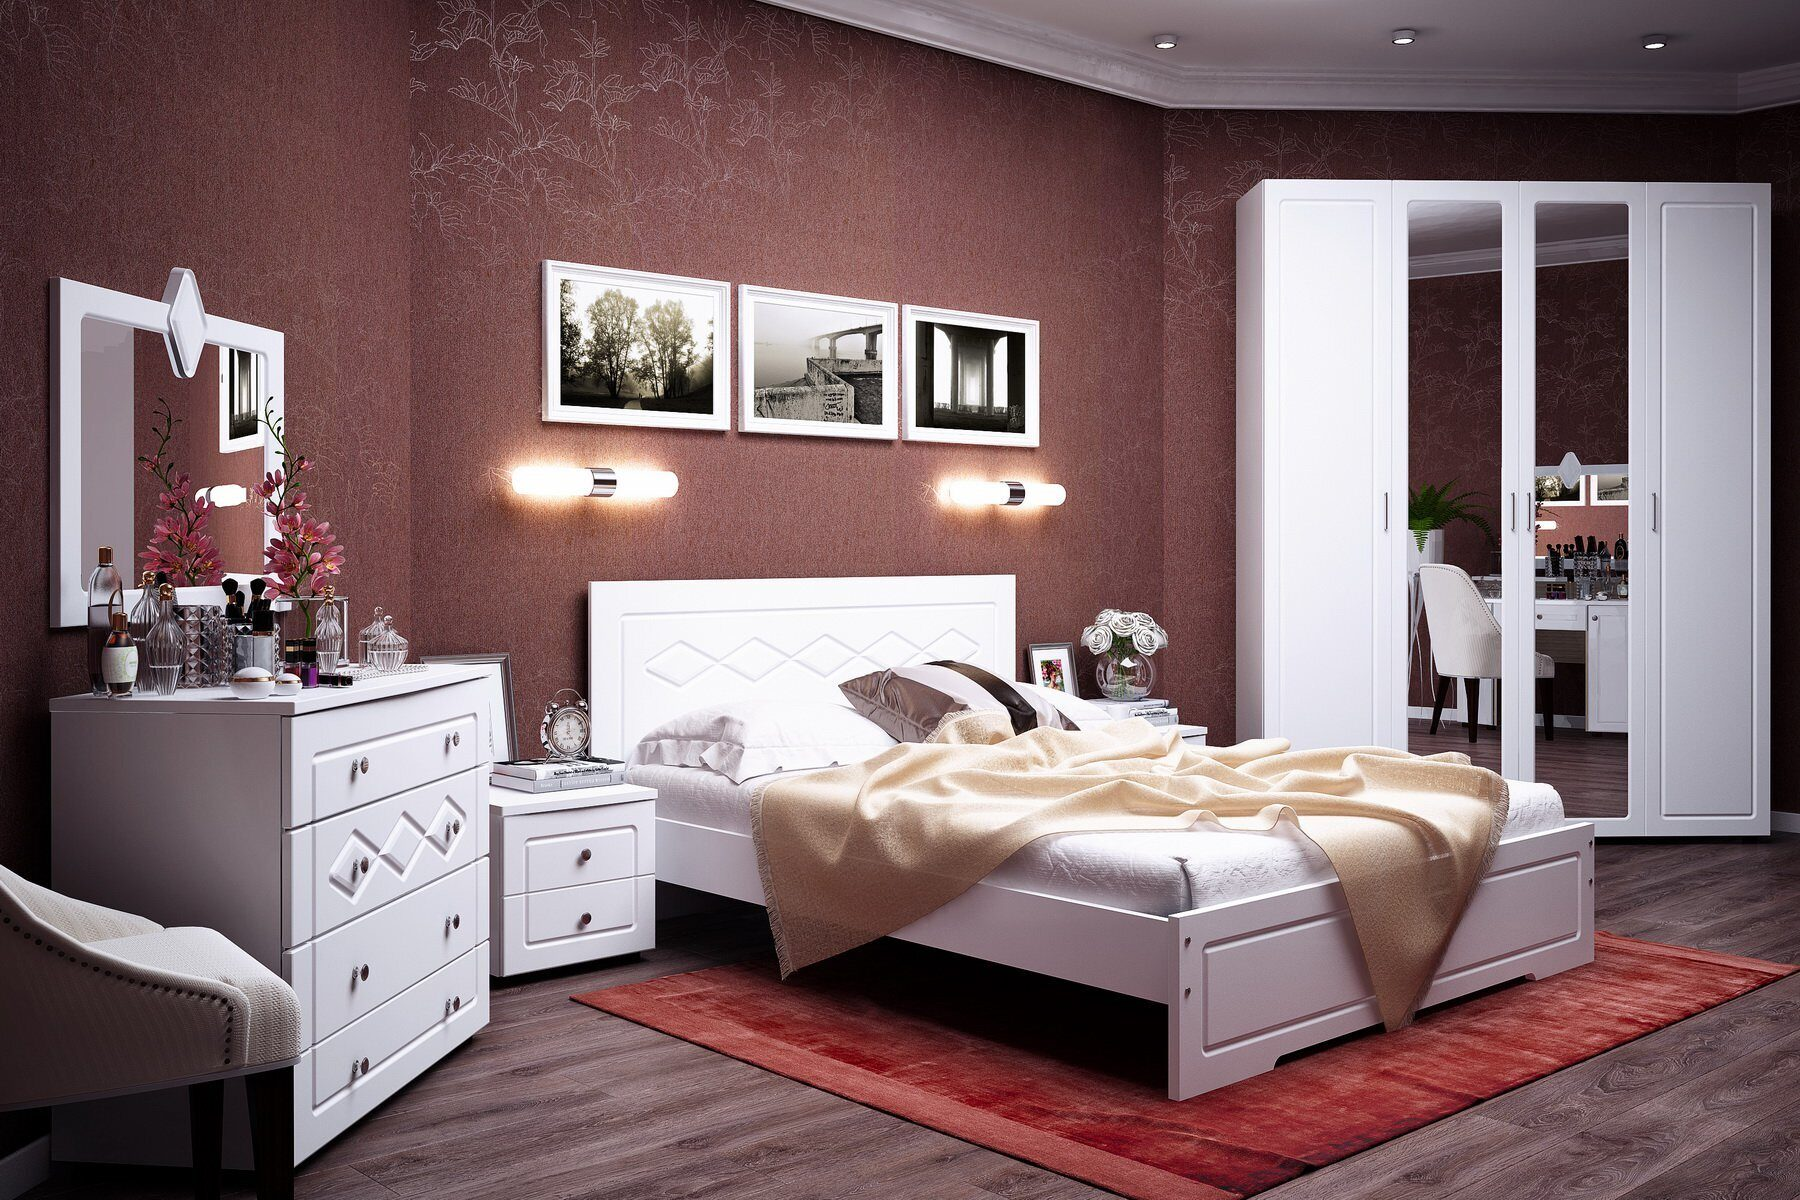 bedroom_orig